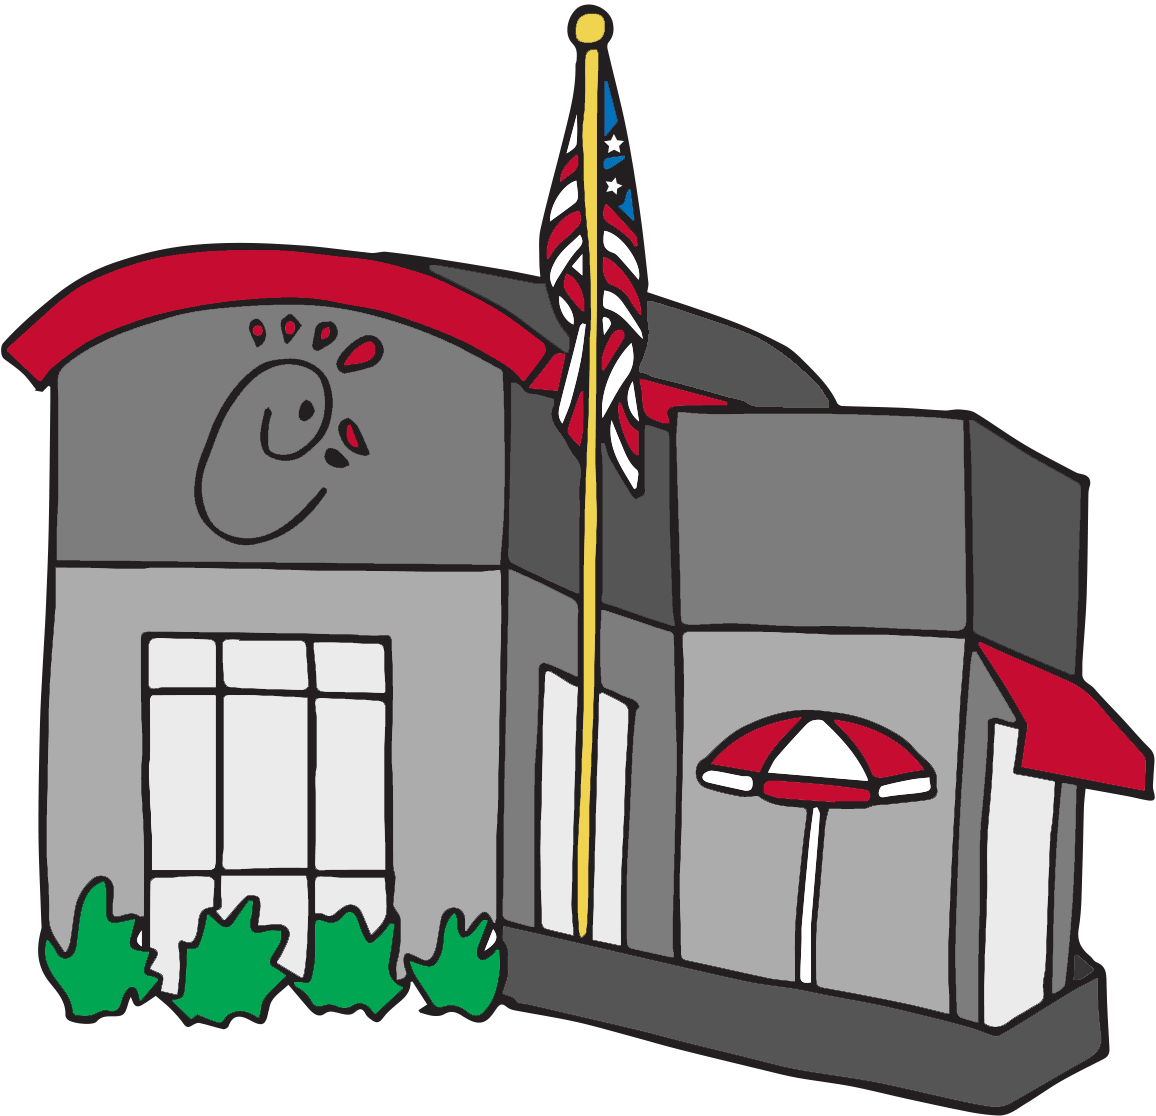 Maria baetti chick fil. Restaurants clipart illustration